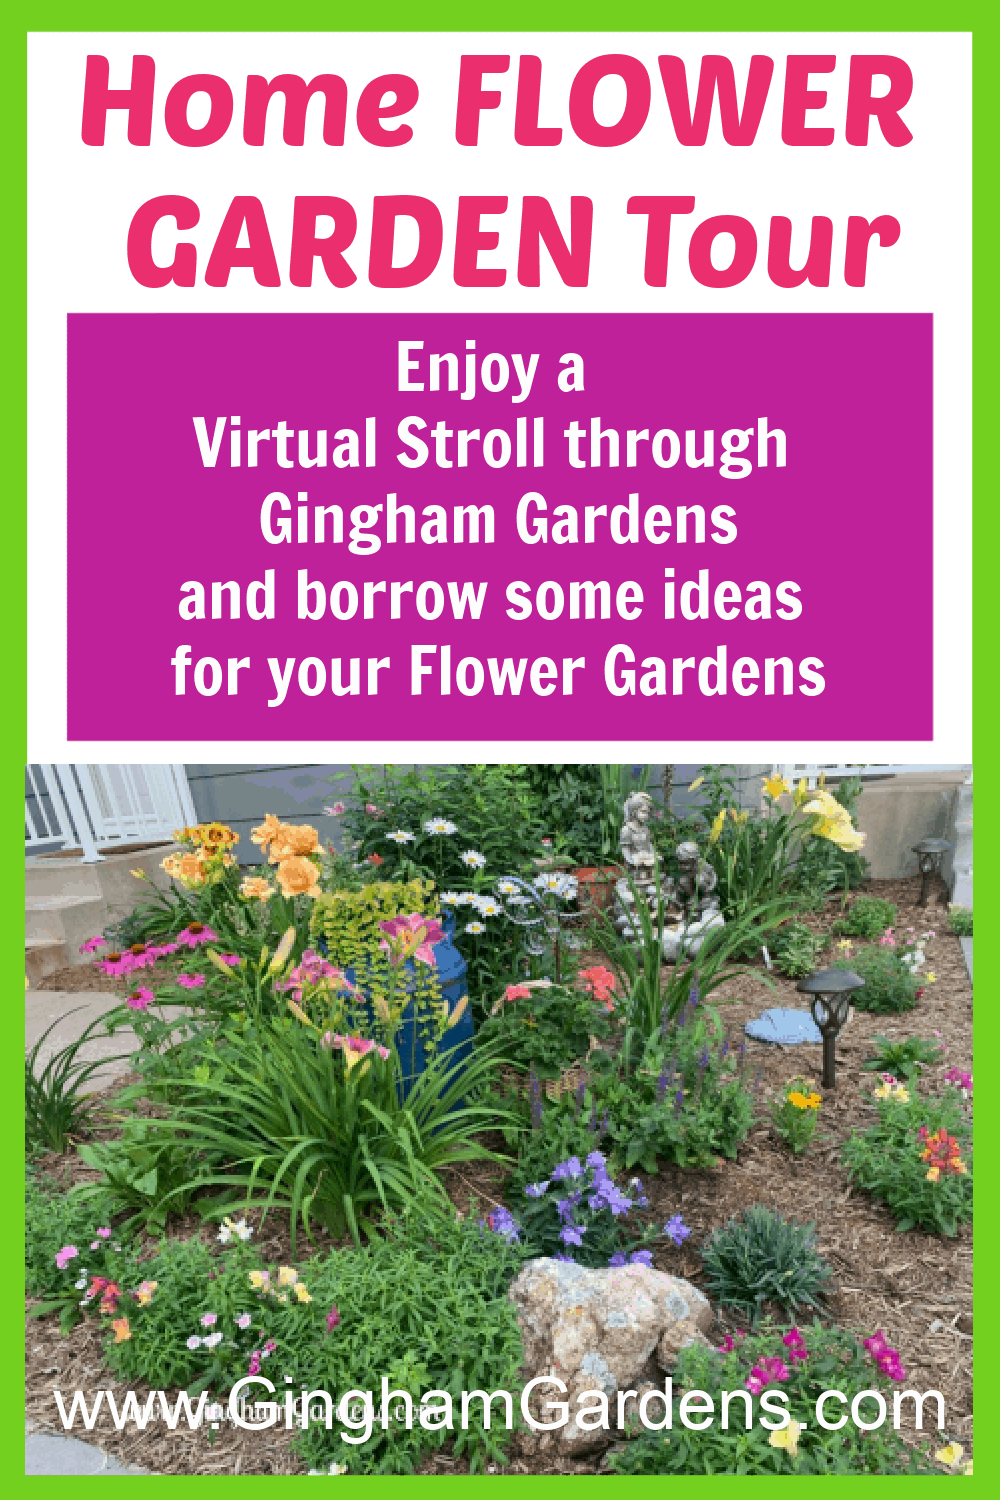 Image of a Flower Garden with Text Overlay - Home Flower Garden Tour